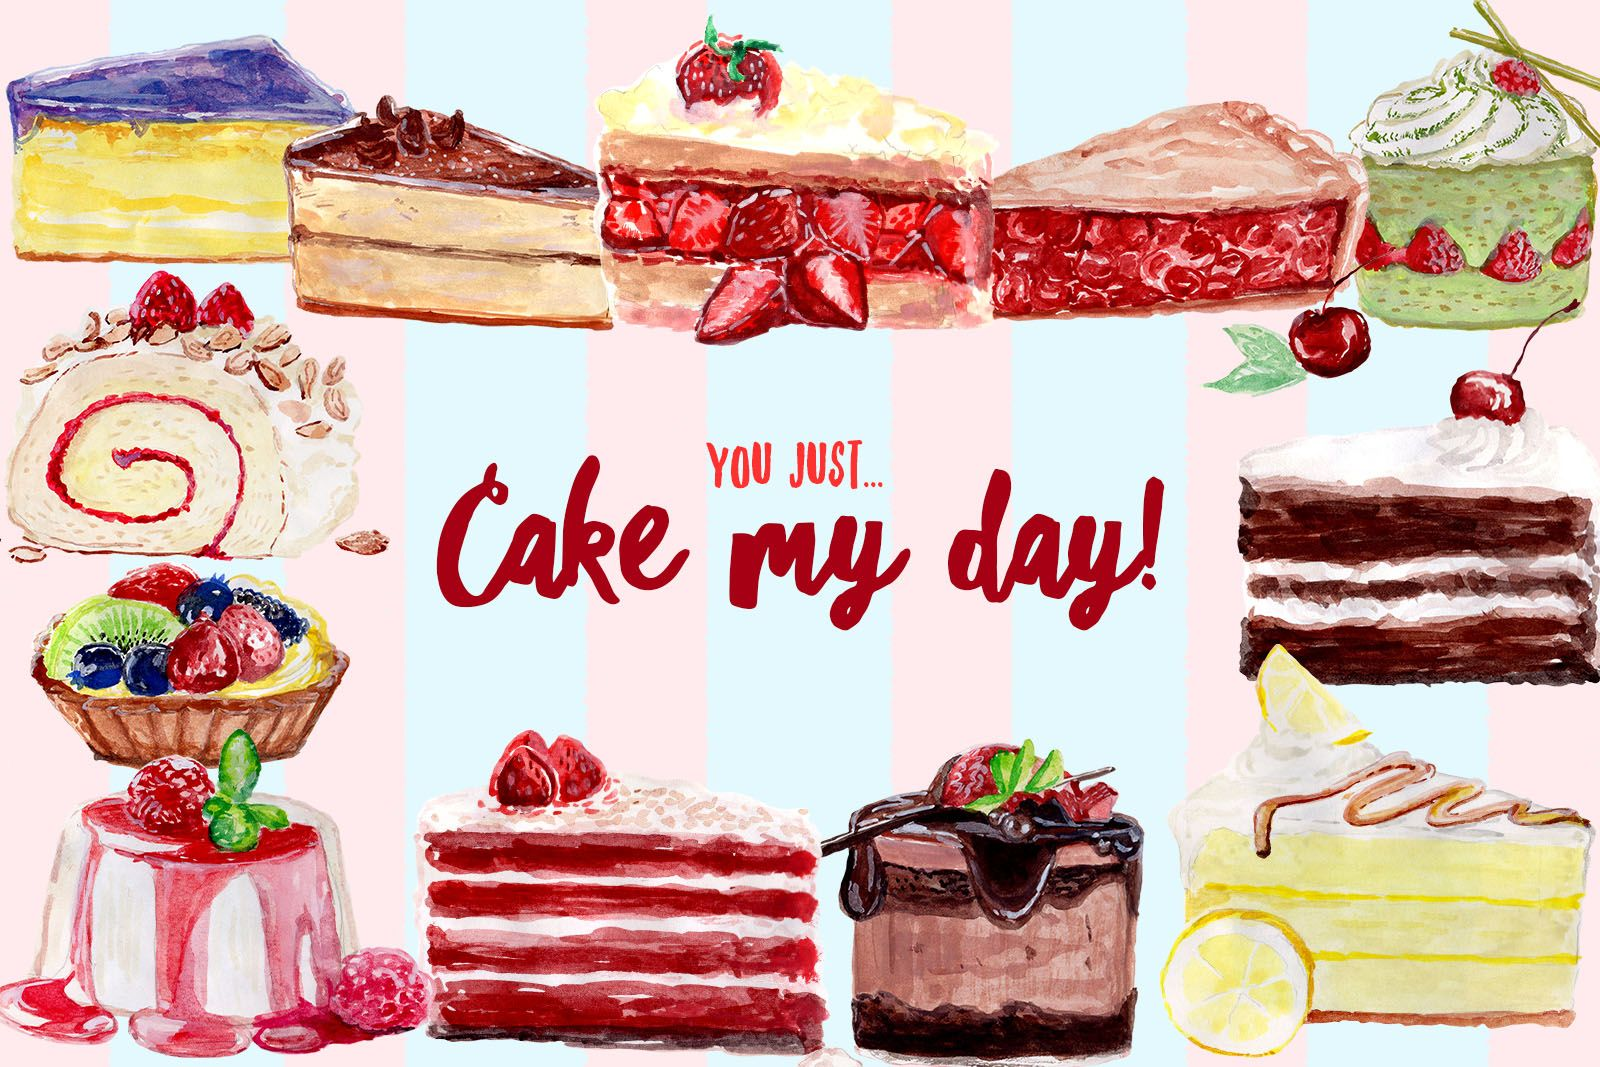 medium resolution of free watercolor cake cliparts volumes cifsdata2 mom design freebies free design resources fdr cake my day free watercolor clipart